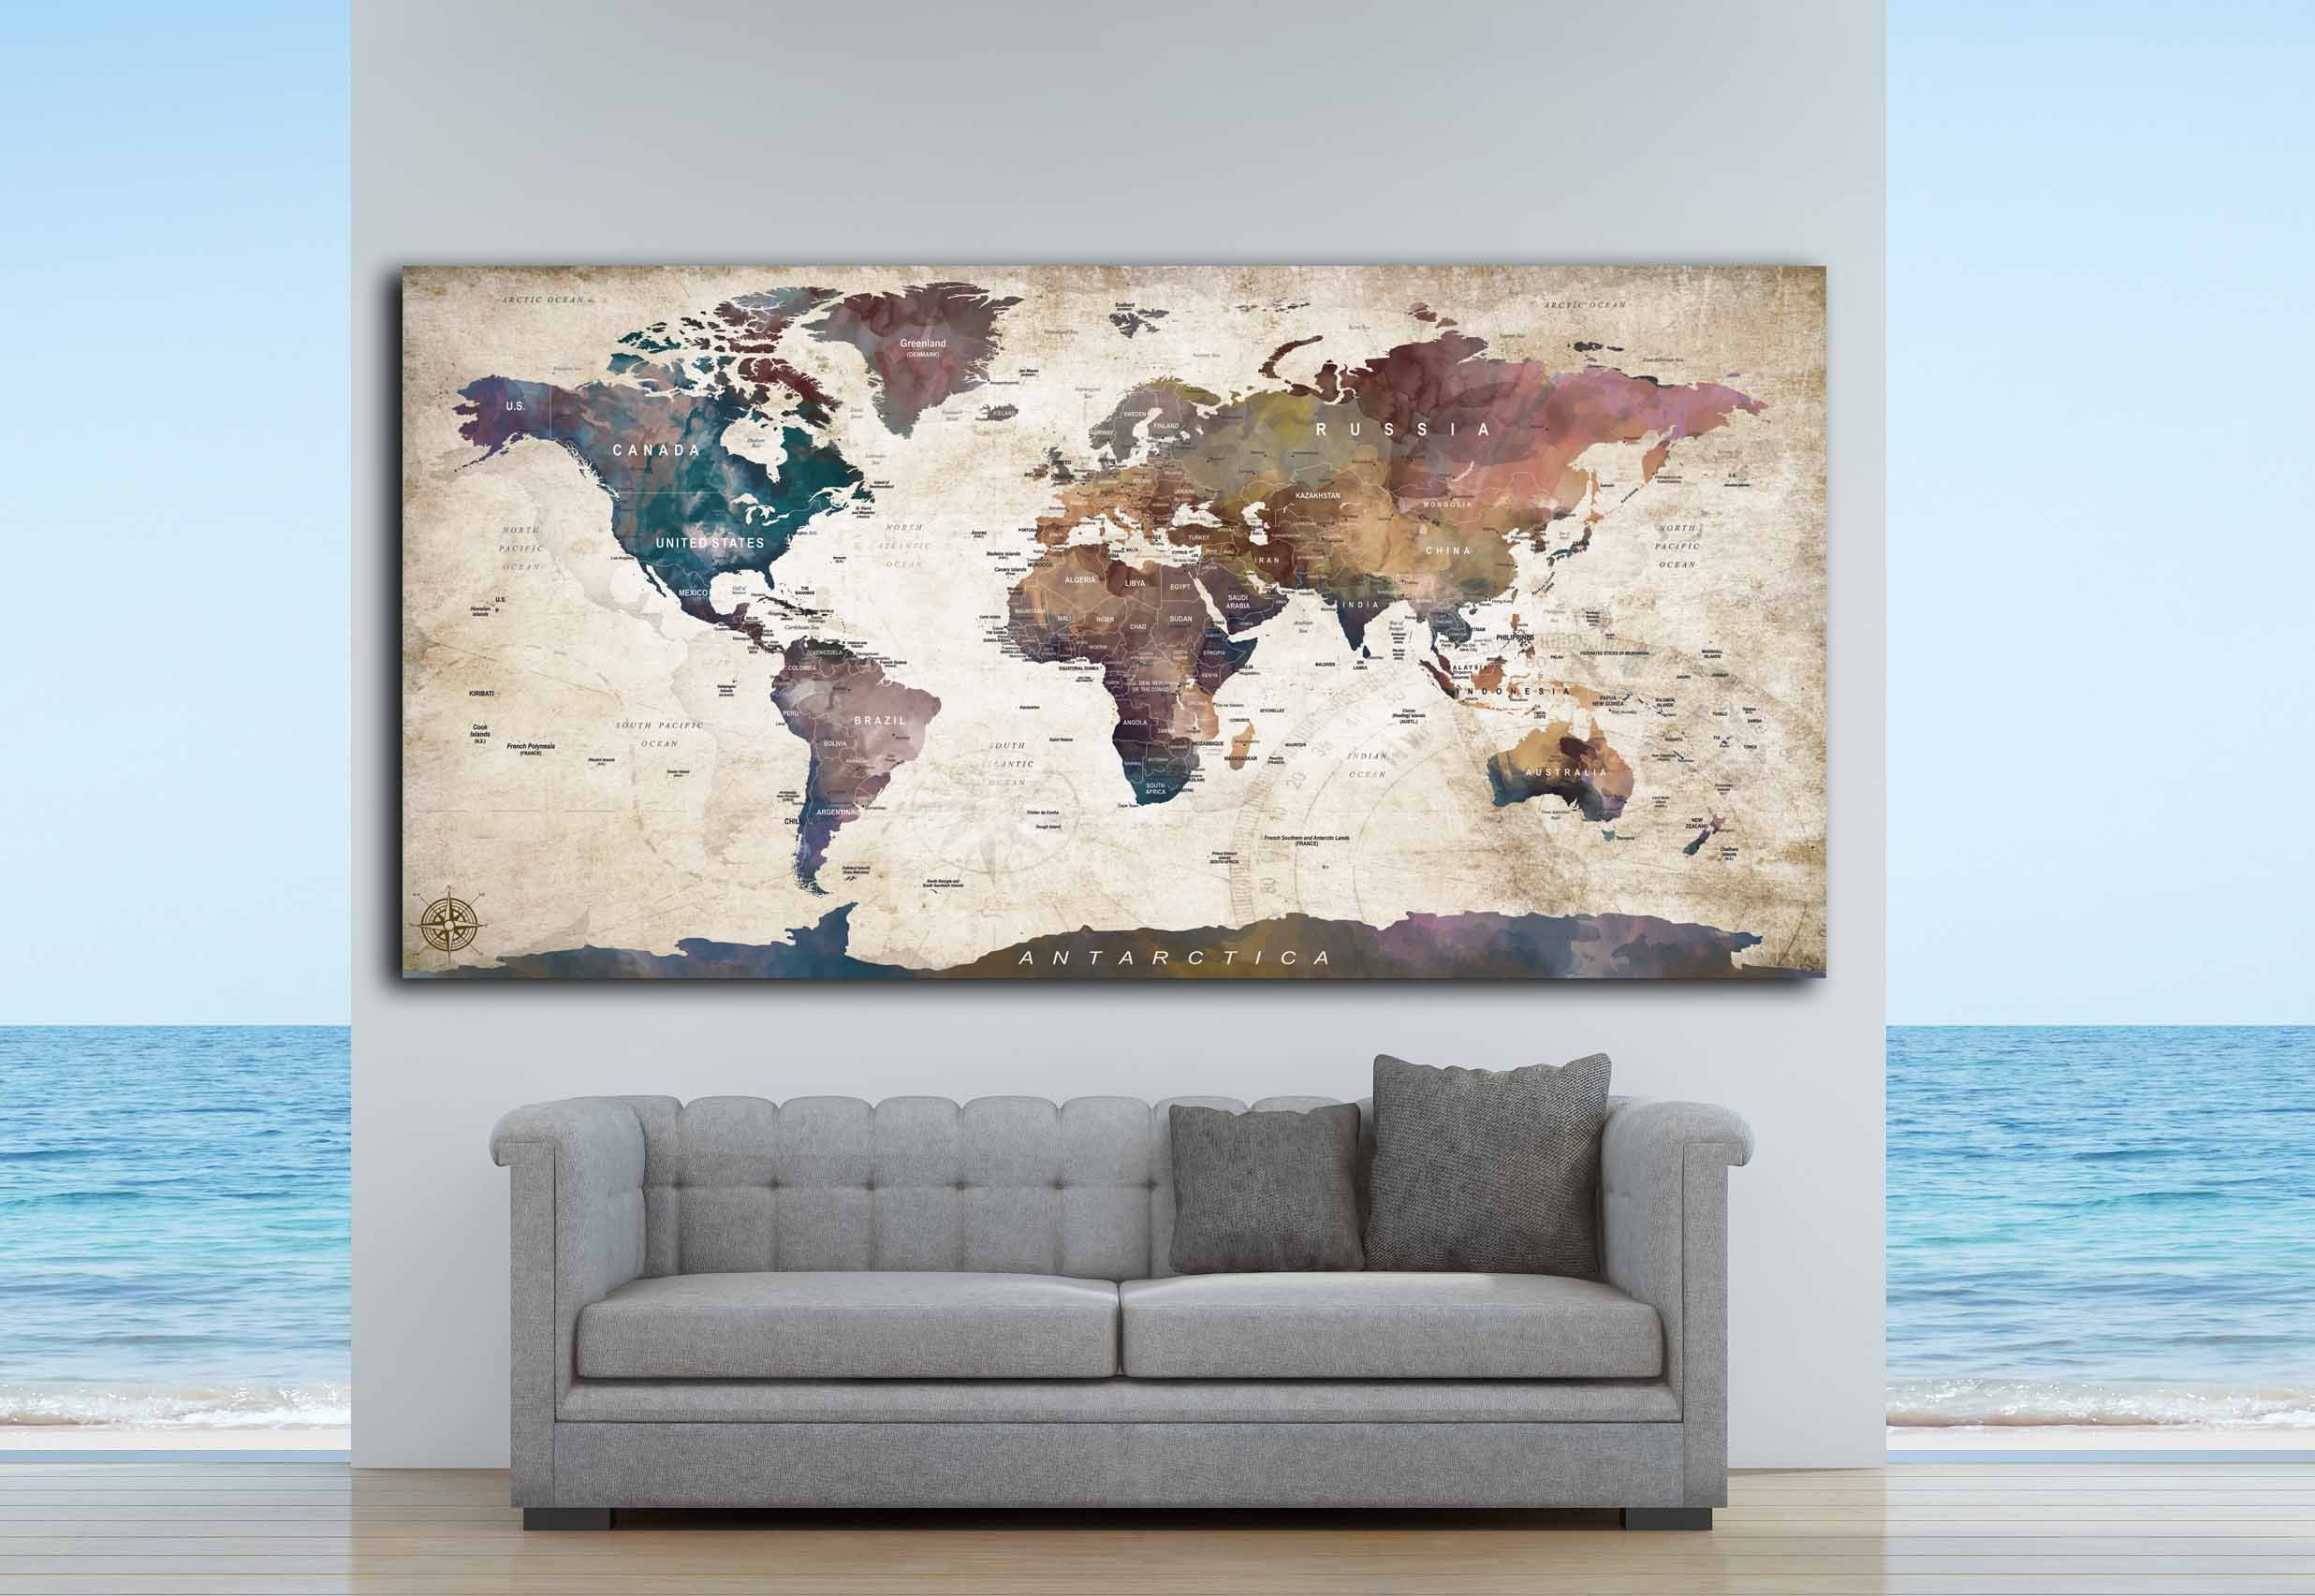 World map push pinworld map custompersonalized mapcustom map world map push pinworld map custompersonalized mapcustom mapanniversary giftspersonalized giftpush pin map customworld map canvasmap gumiabroncs Image collections